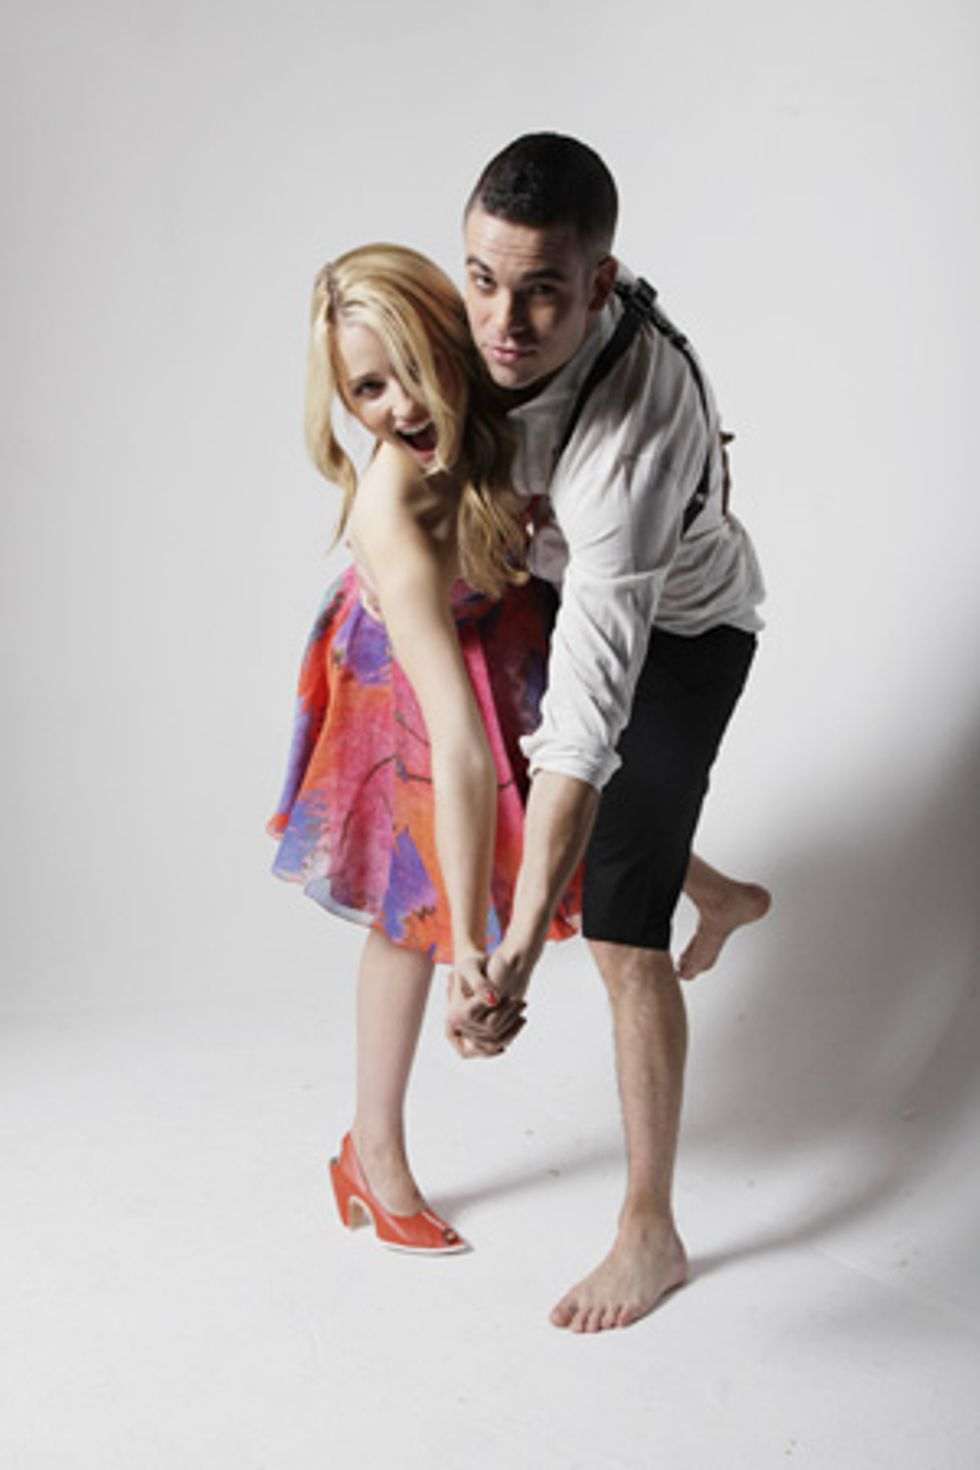 Extra Extra! More With Glee's Dianna Agron and Mark Salling